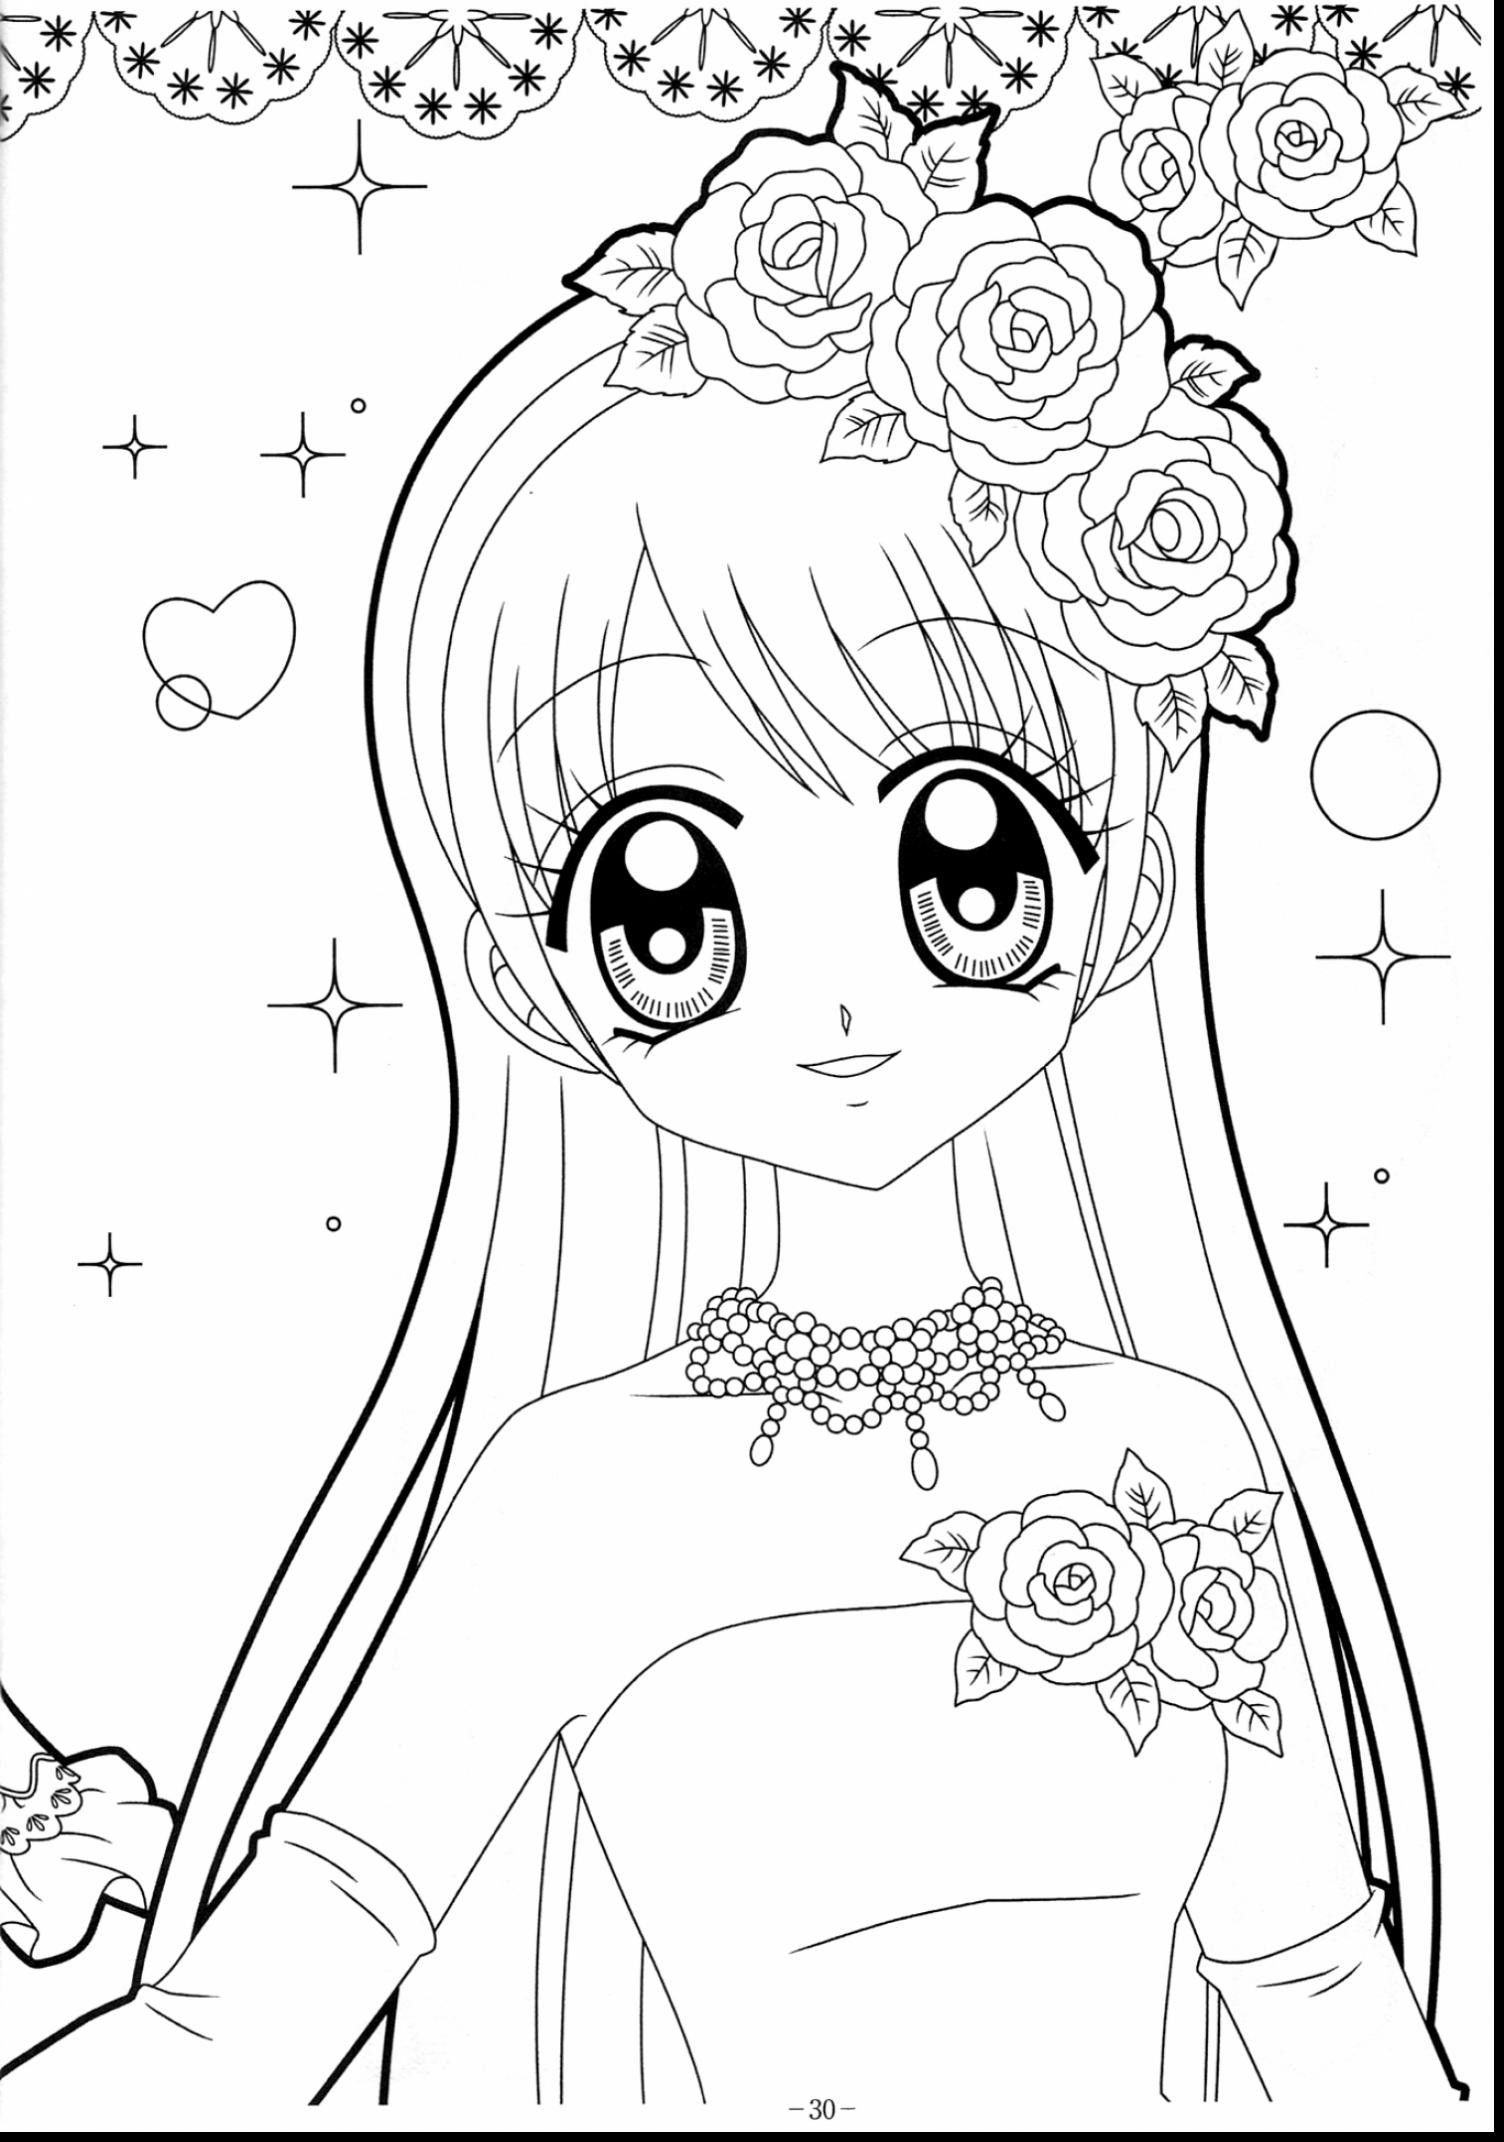 Anime Kawaii Coloring Pages pour Coloriage Manga Kawaii